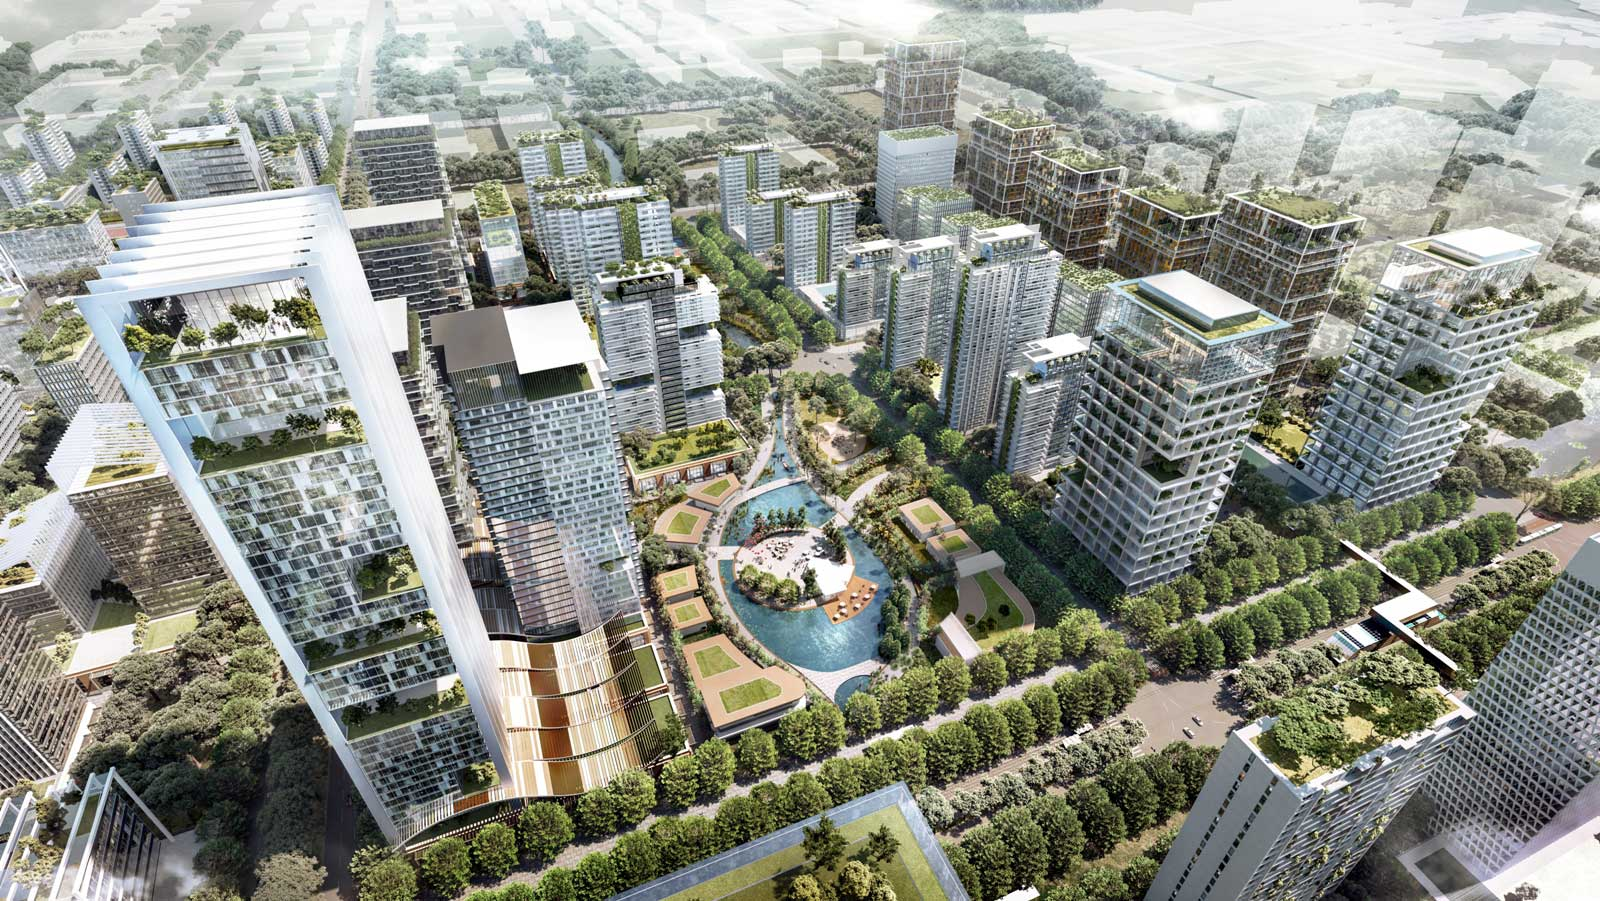 Filinvest New Clark City at the forefront of economic recovery